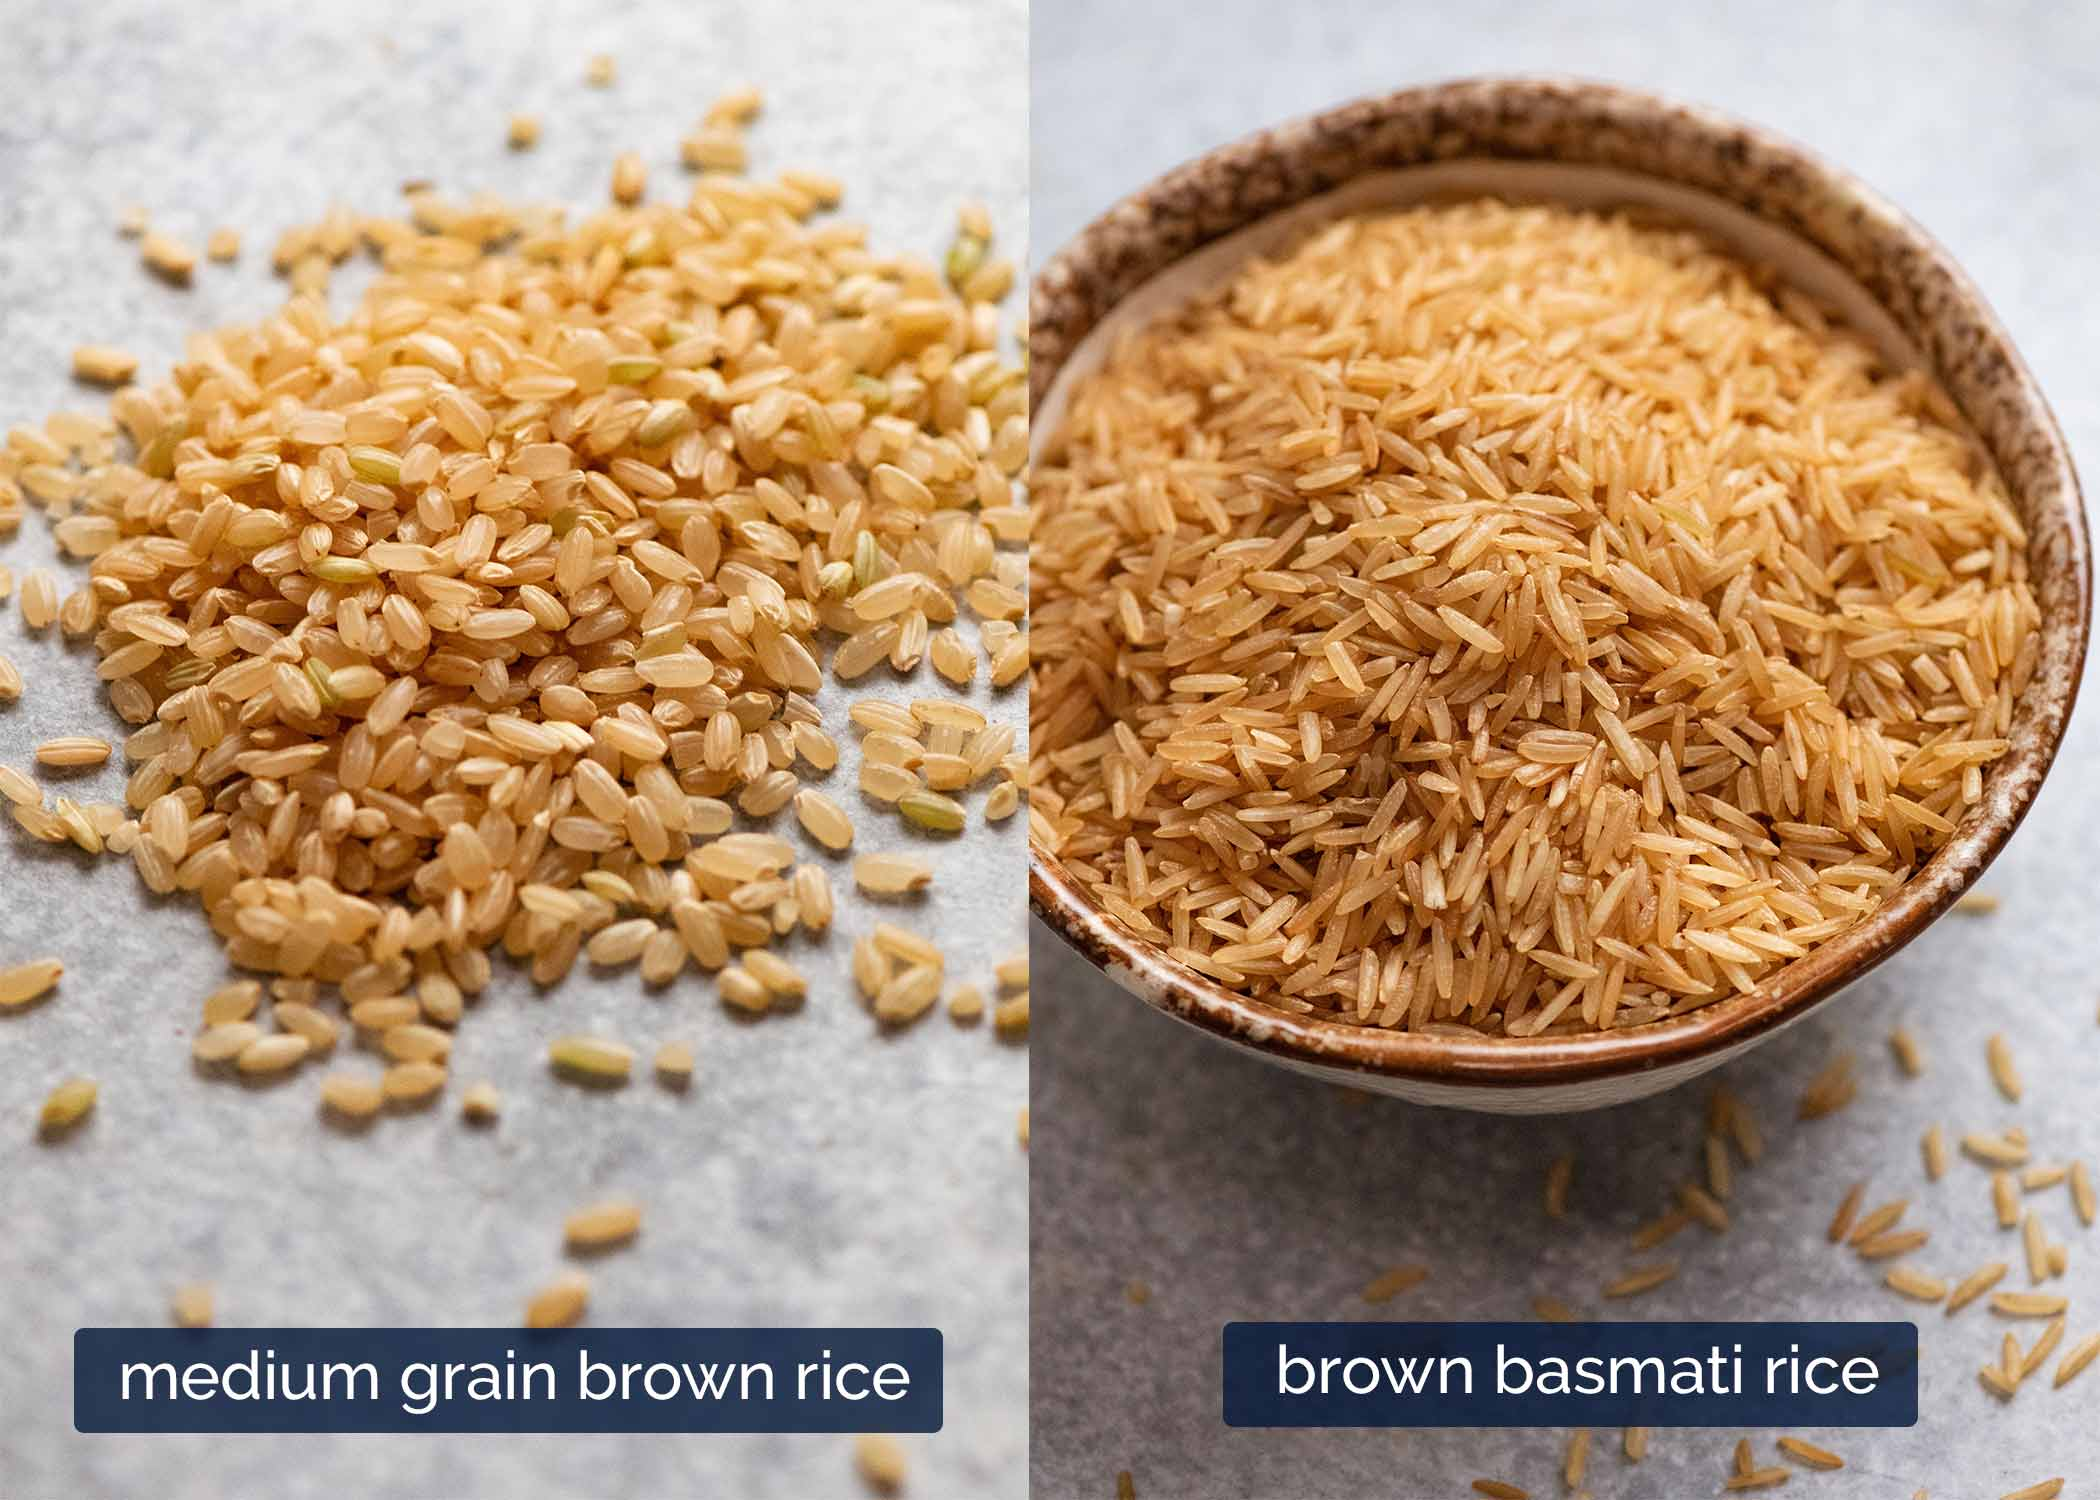 Raw brown rice